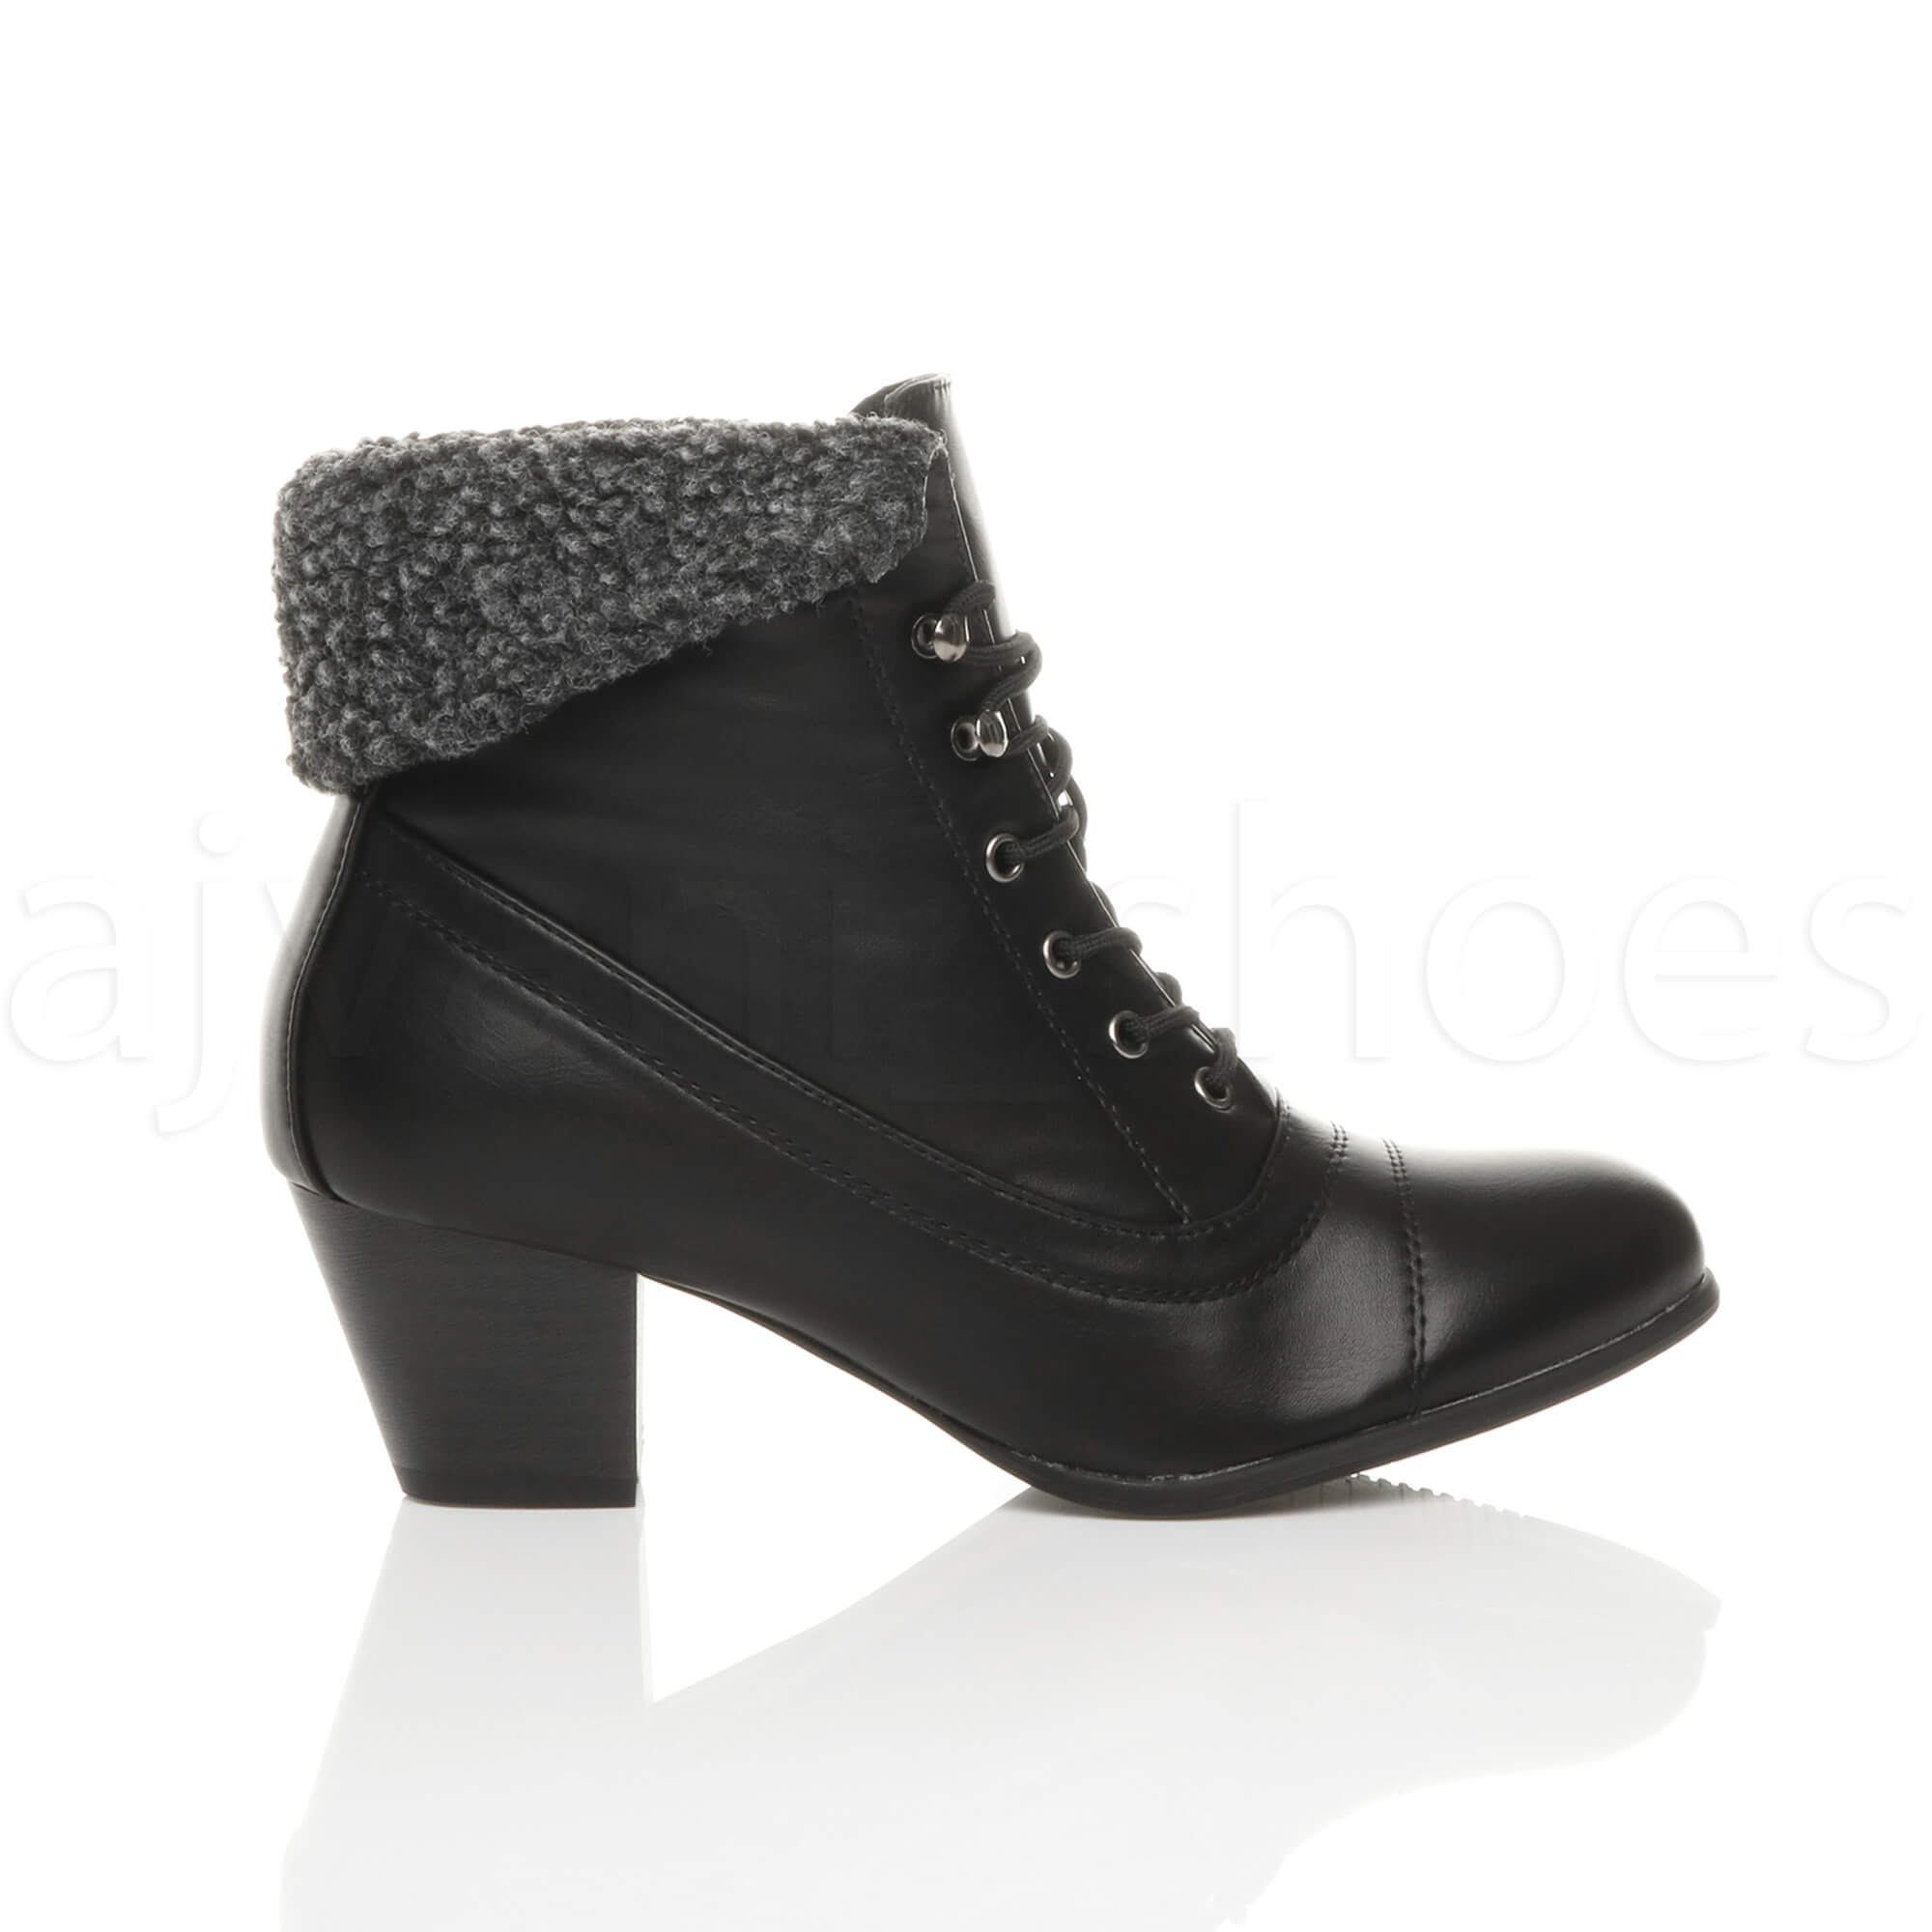 WOMENS-LADIES-MID-HEEL-LACE-UP-VINTAGE-FUR-CUFF-WINTER-PIXIE-ANKLE-BOOTS-SIZE